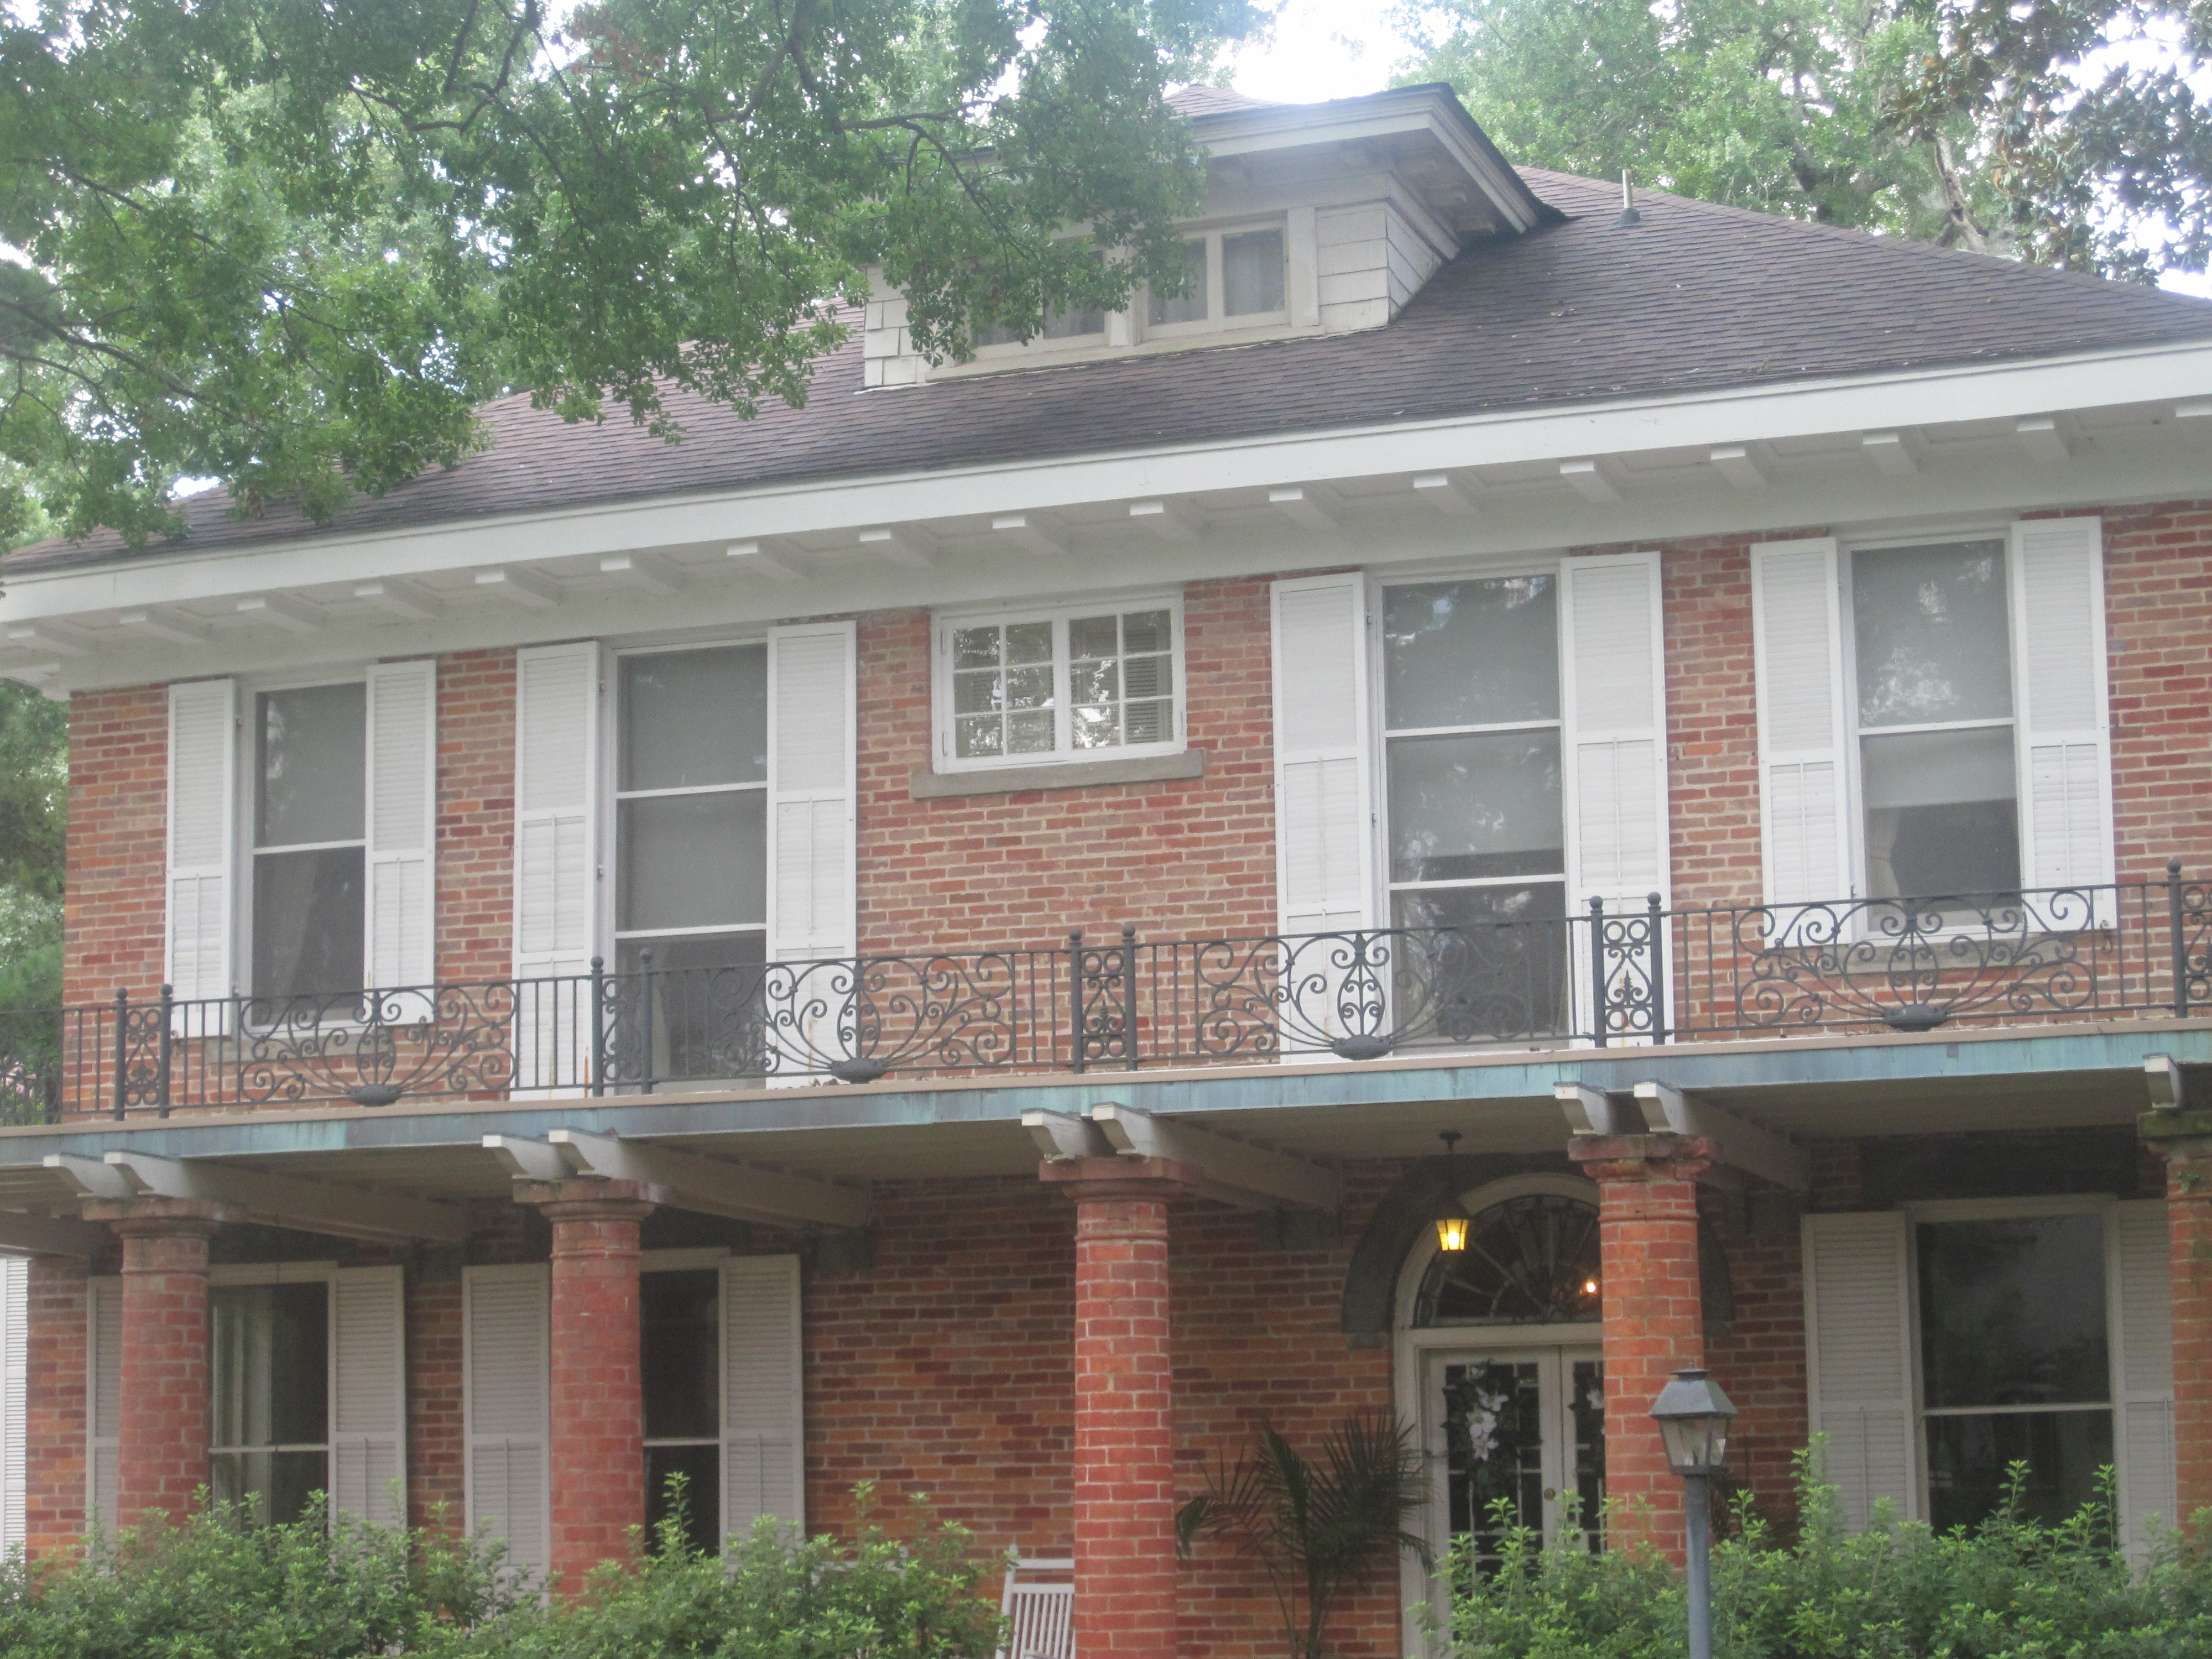 The Steel Magnolias Bed And Breakfast